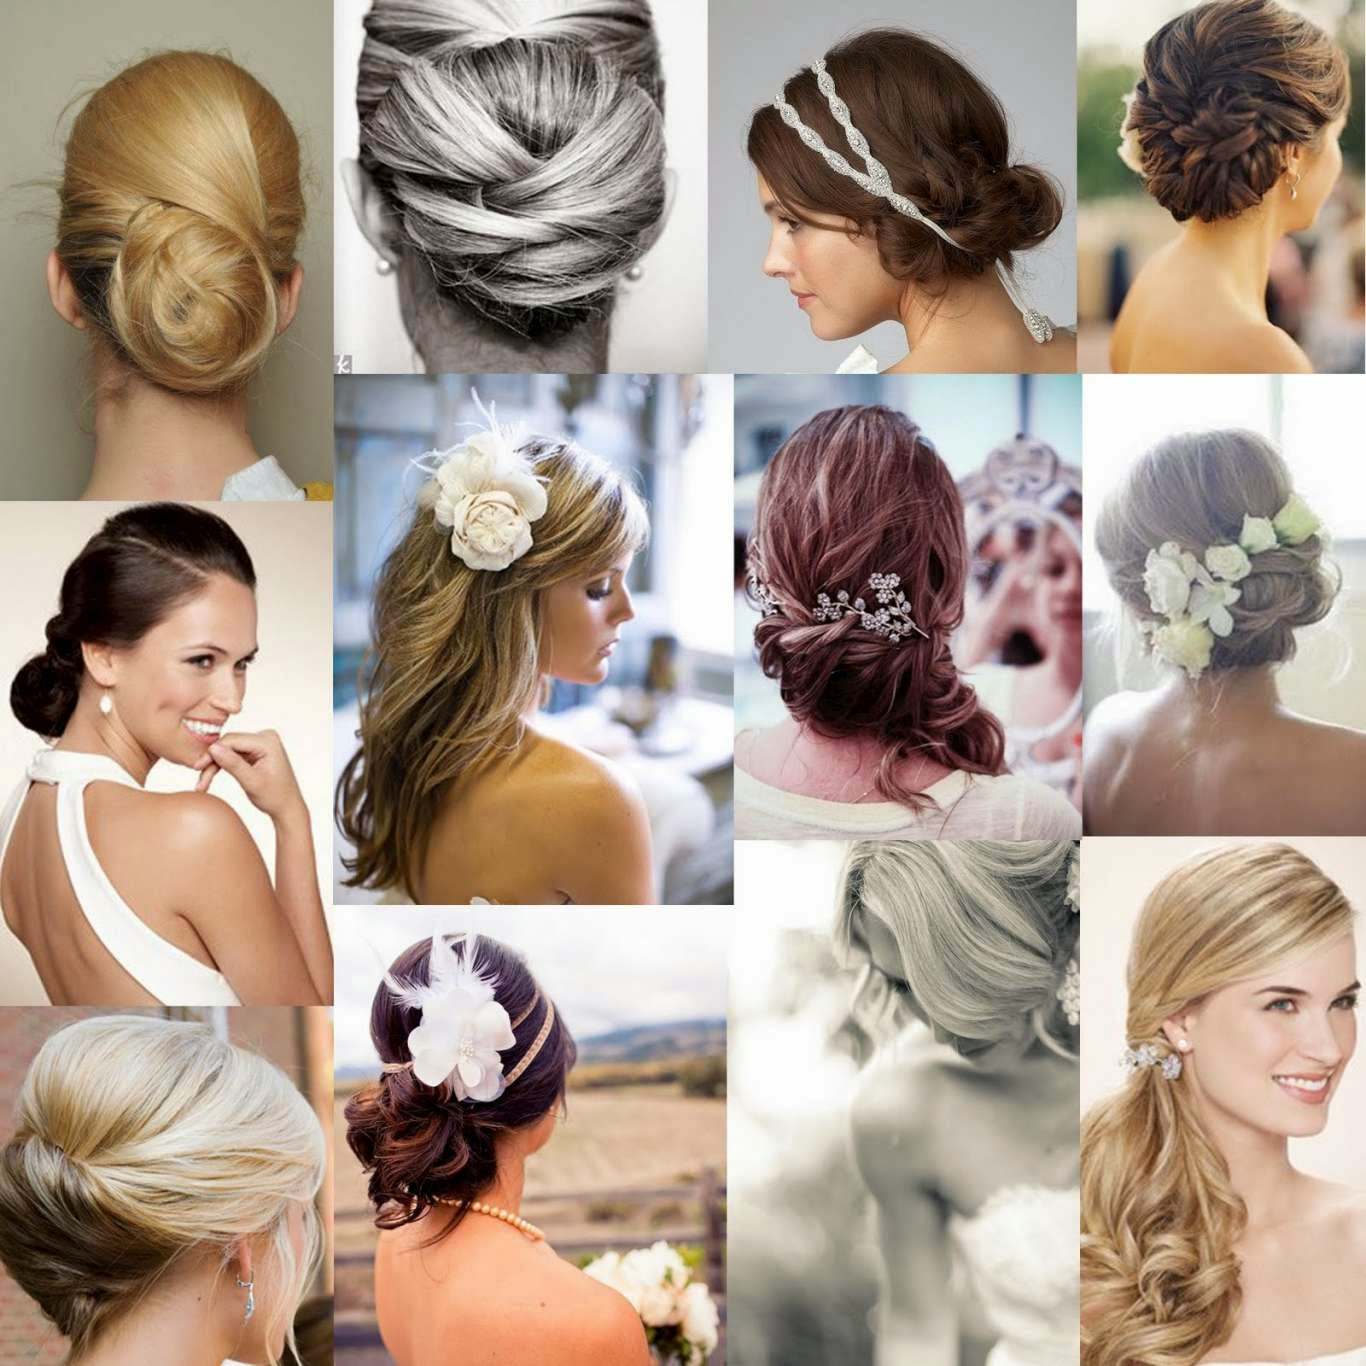 New Hair 2014 Hairstyles